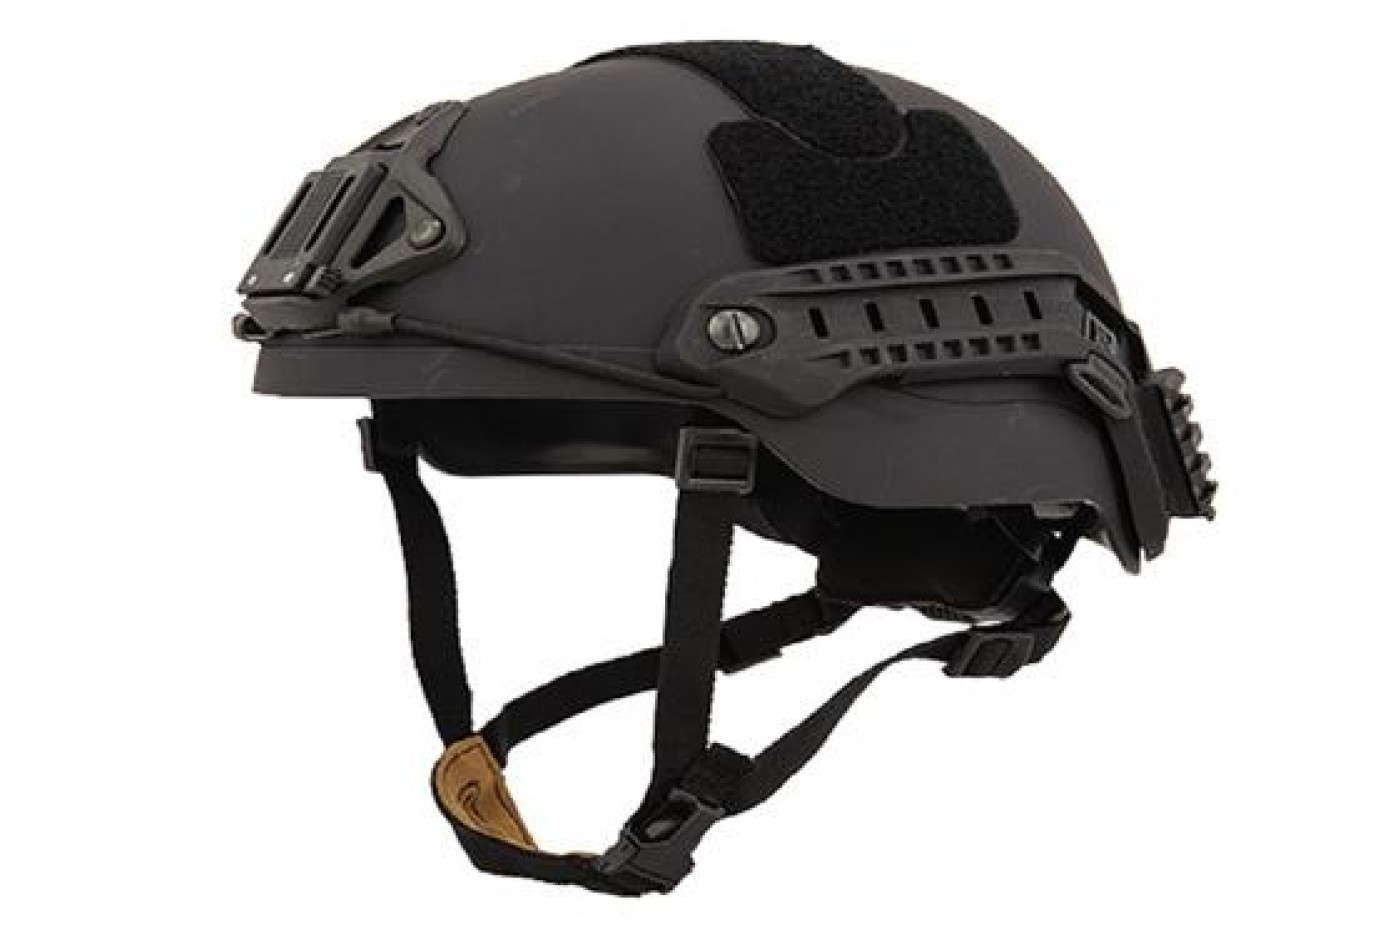 Helmet / Head Protection